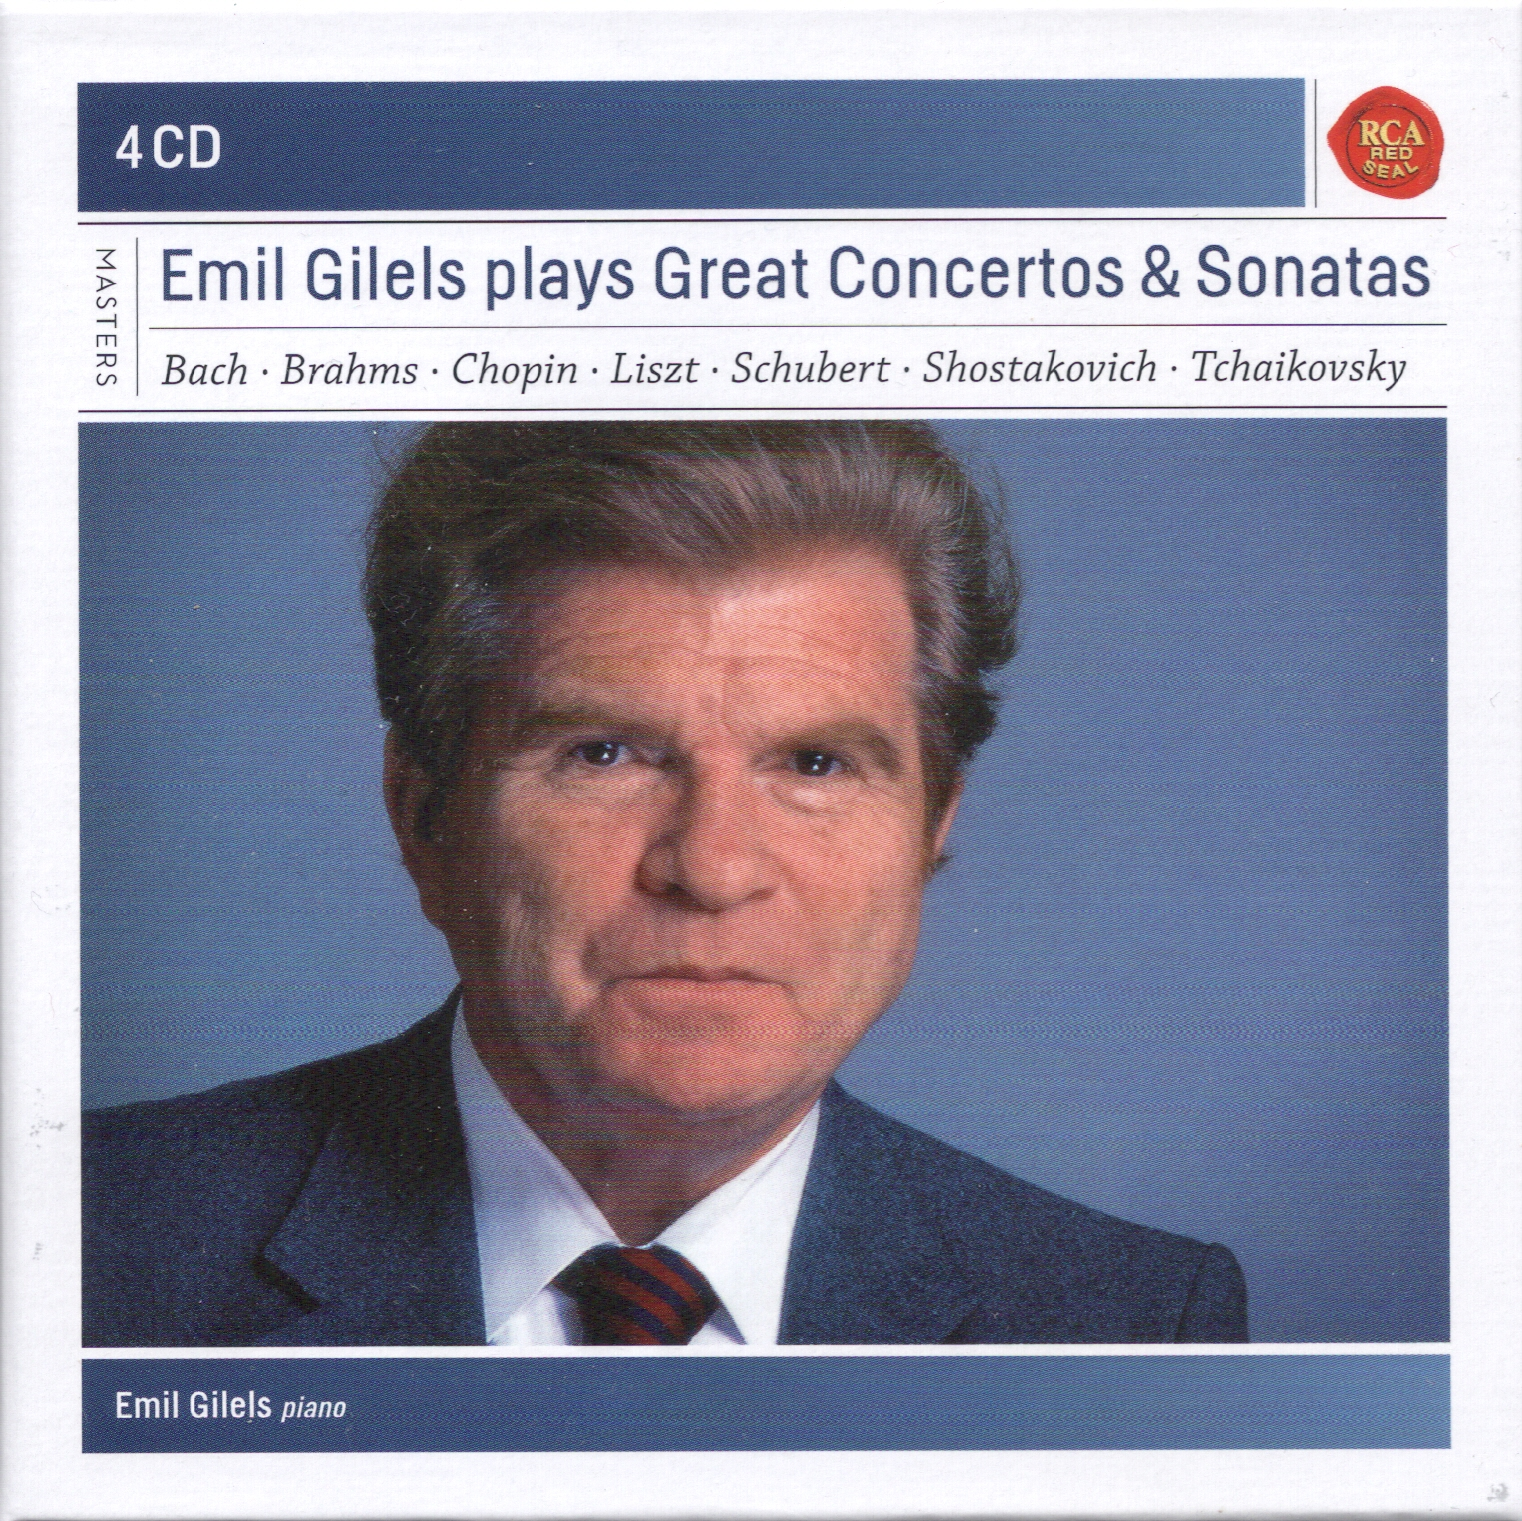 Emil Gilels at RCA & US Columbia(SonyBMG)